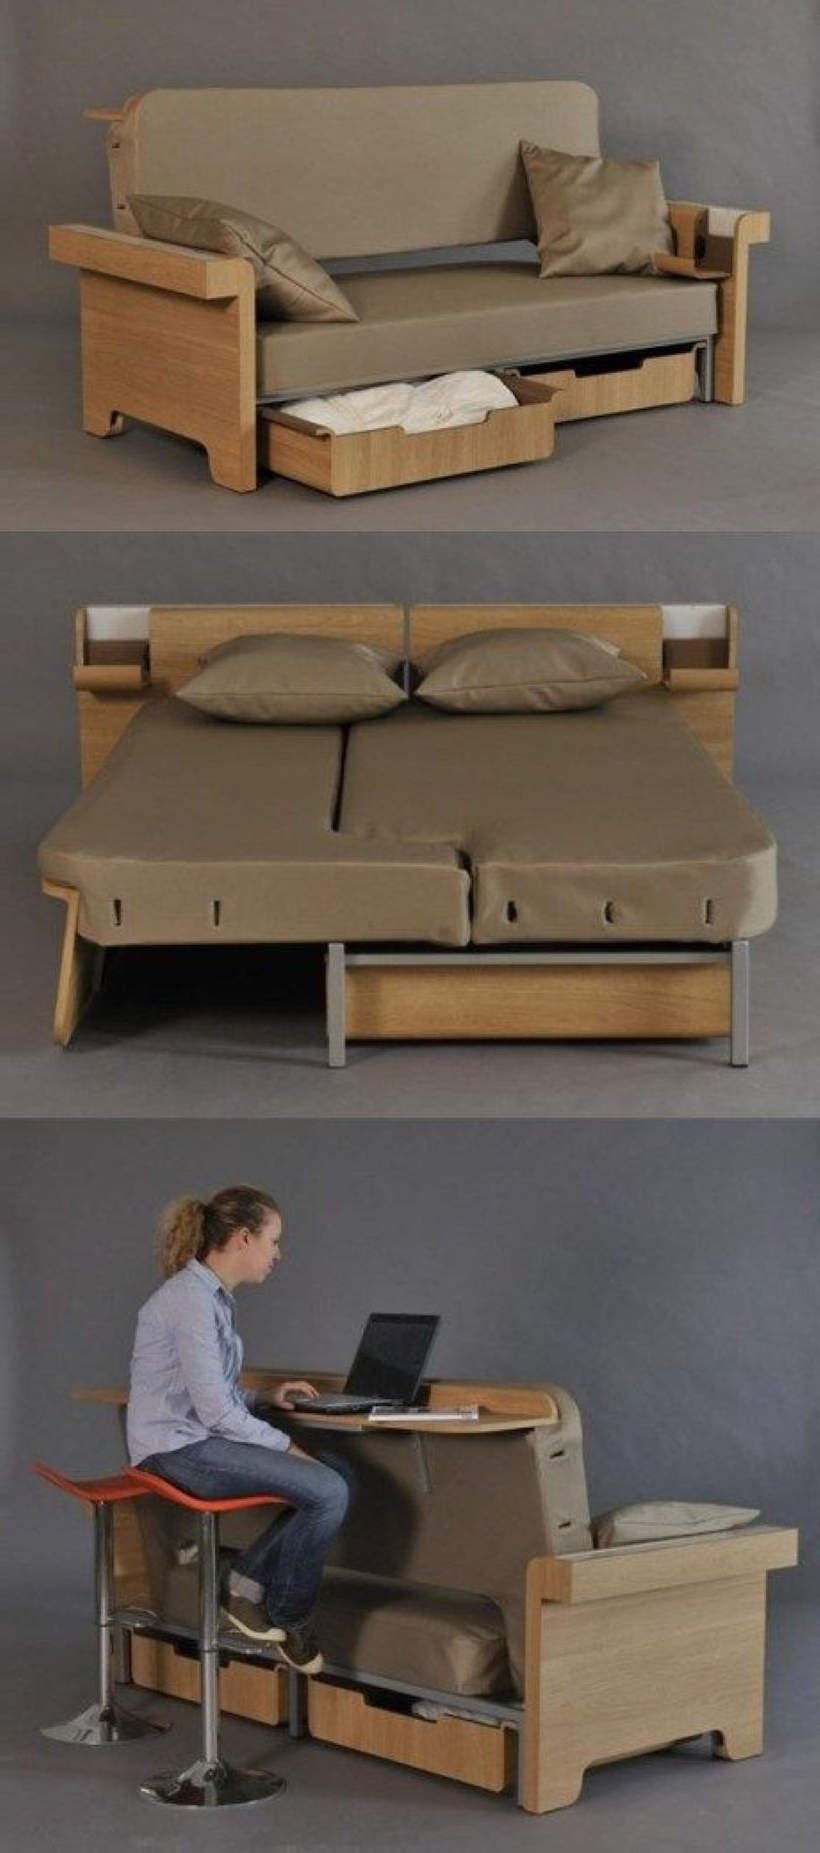 Awesome Multifunctional Bed For Space Saving Modular